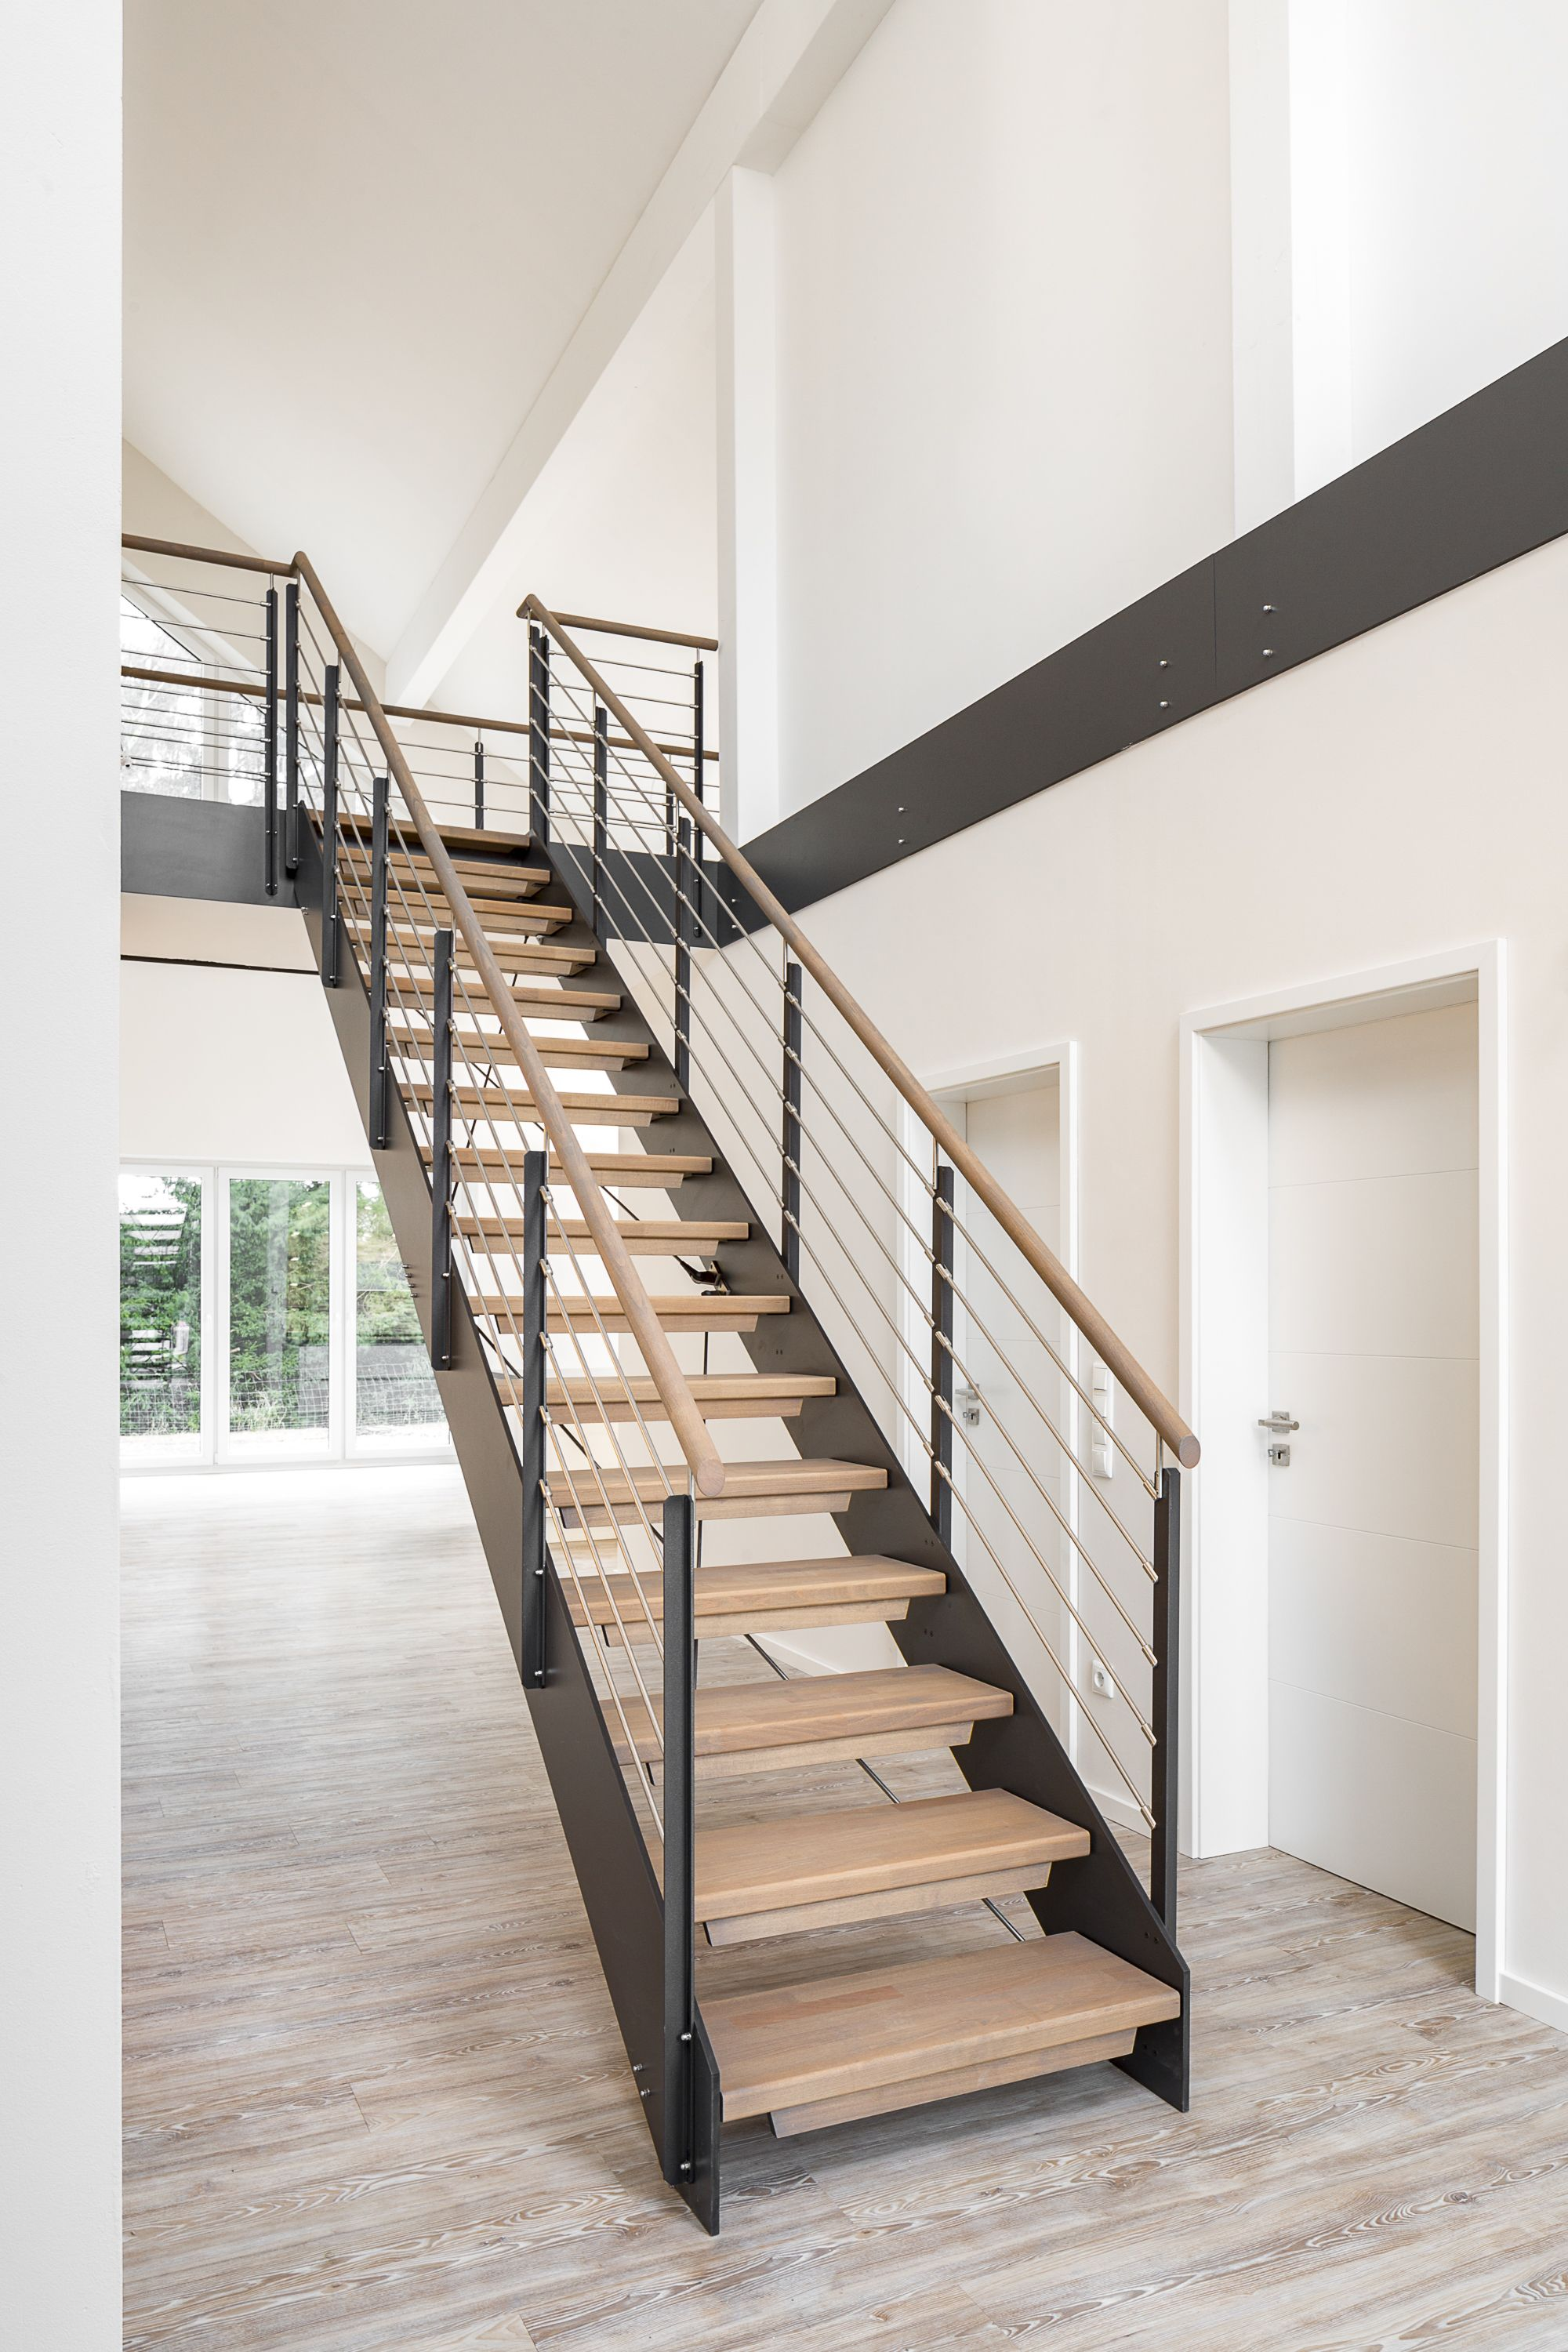 hpl treppe kaufen treppenhersteller treppenbau vo treppenbau vo haus ideen pinterest. Black Bedroom Furniture Sets. Home Design Ideas